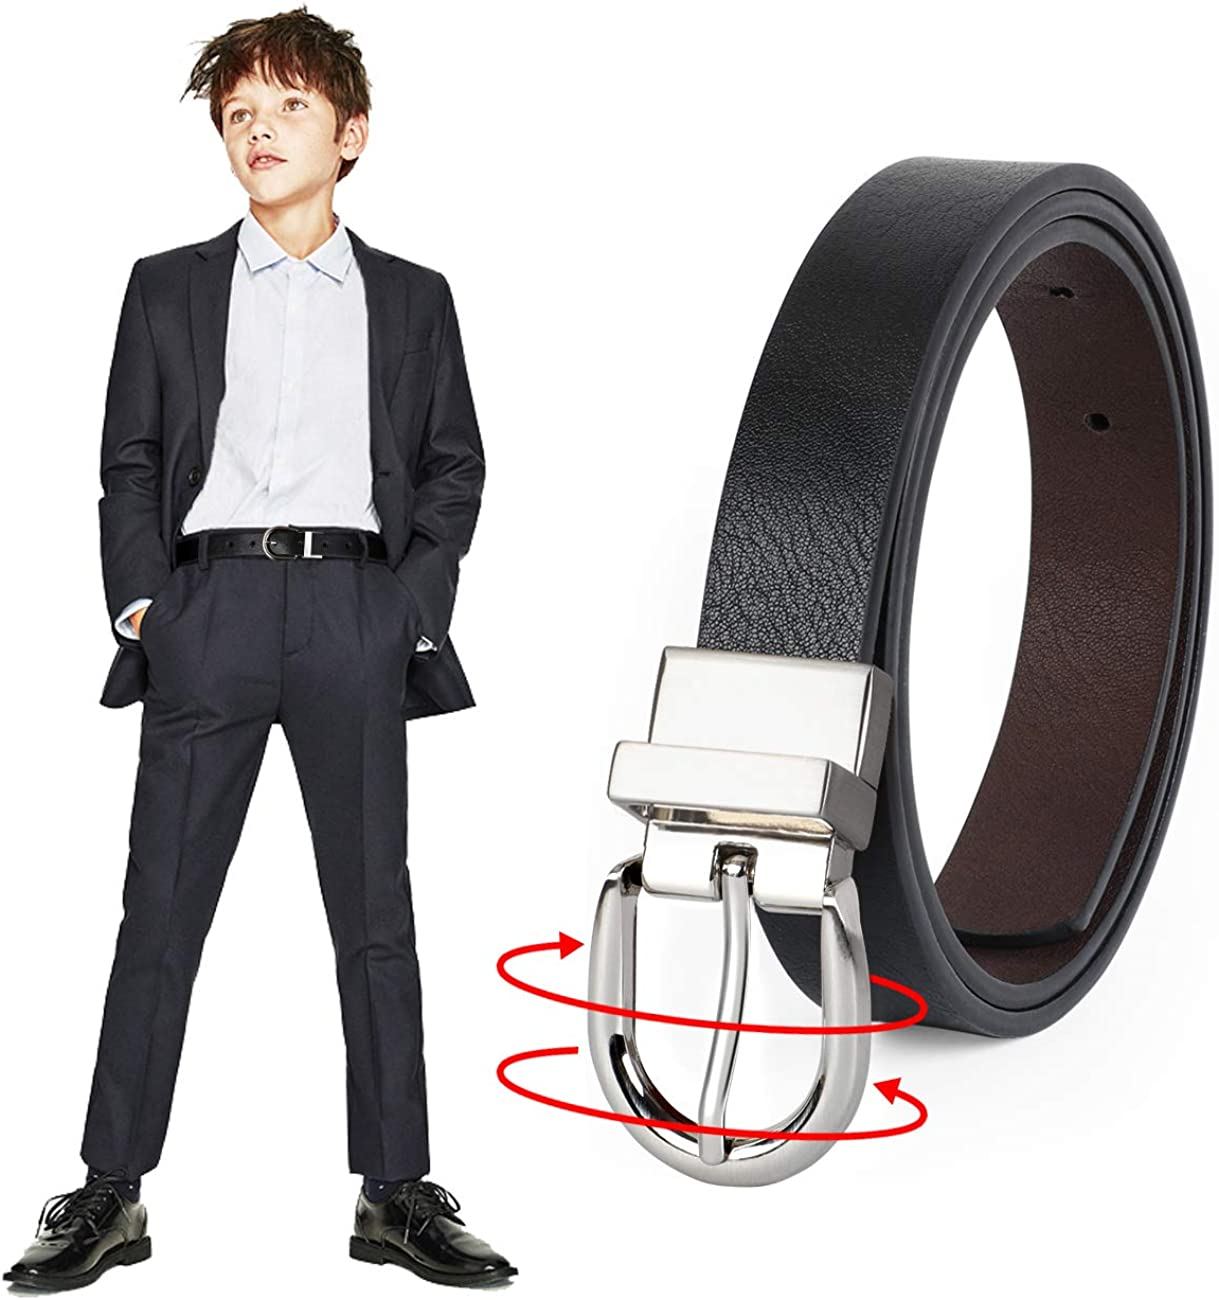 JASGOOD Kids Leather Reversible Belt, Boys Casual Belt for Jeans School Uniform with Rotated Buckle Back to School Gift